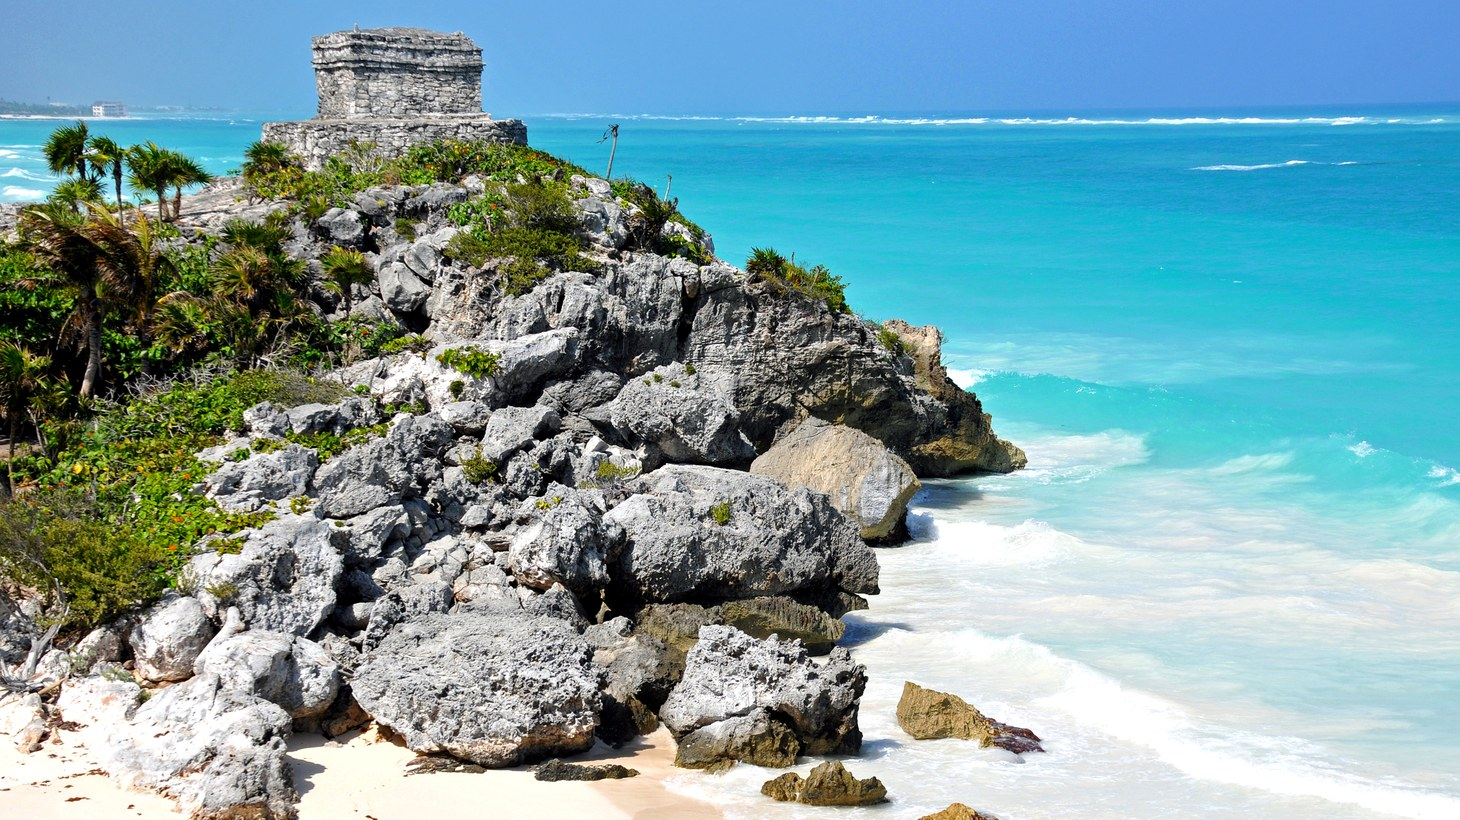 Temple of the Winds in Tulum, Mexico.